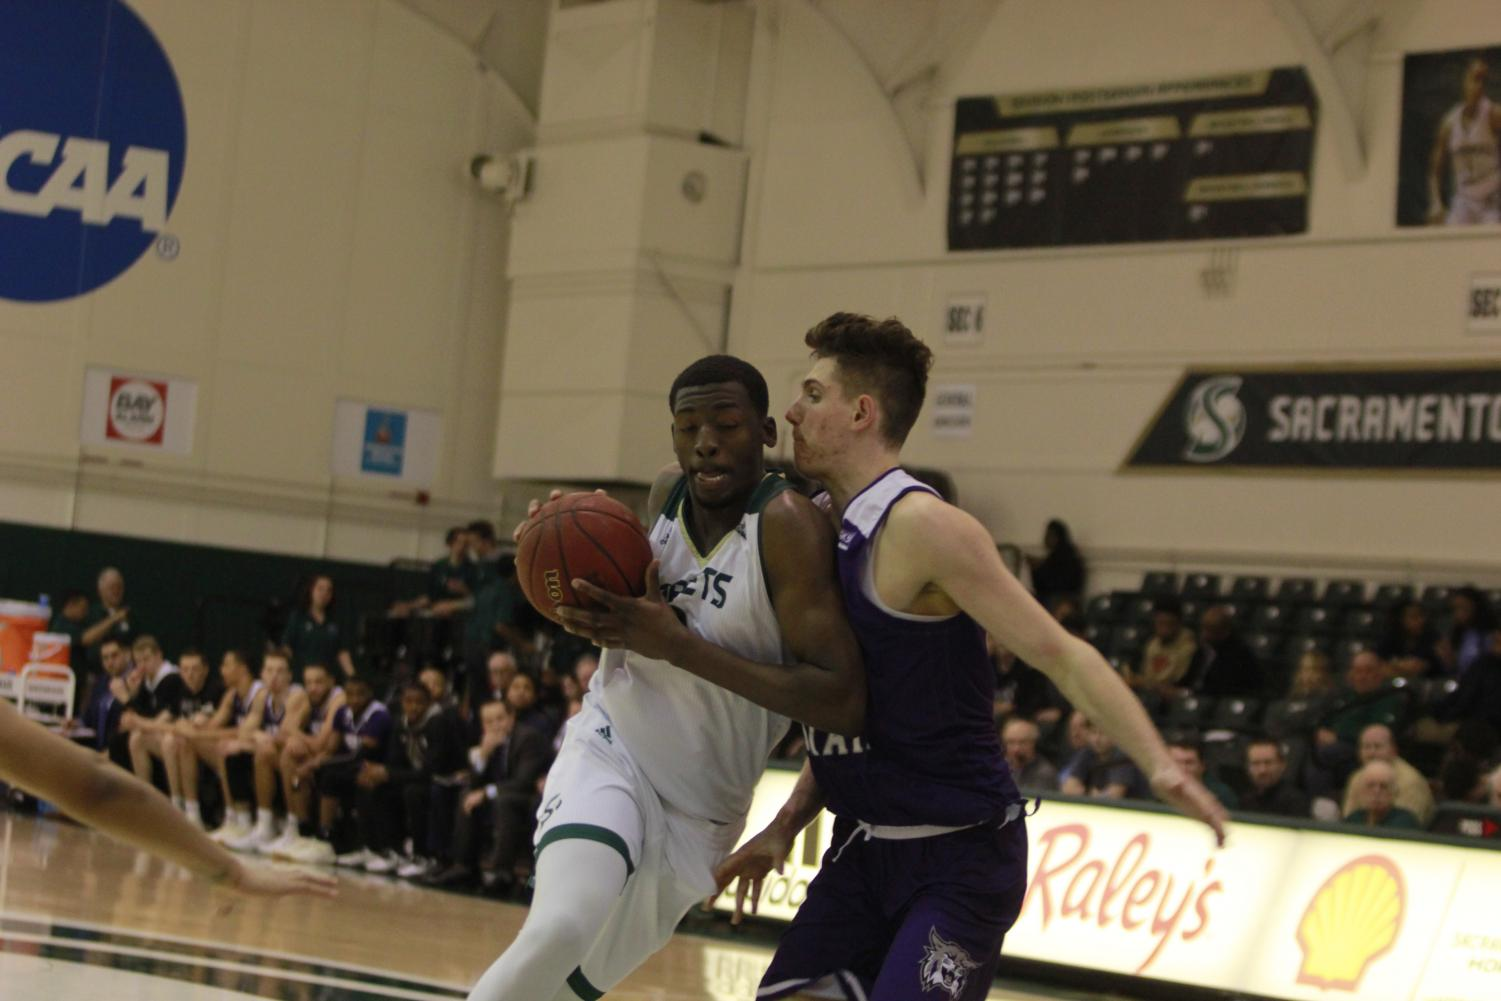 Sac State junior center Joshua Patton drives towards the basket in the Hornets 78-76 win over Weber State on Thursday.